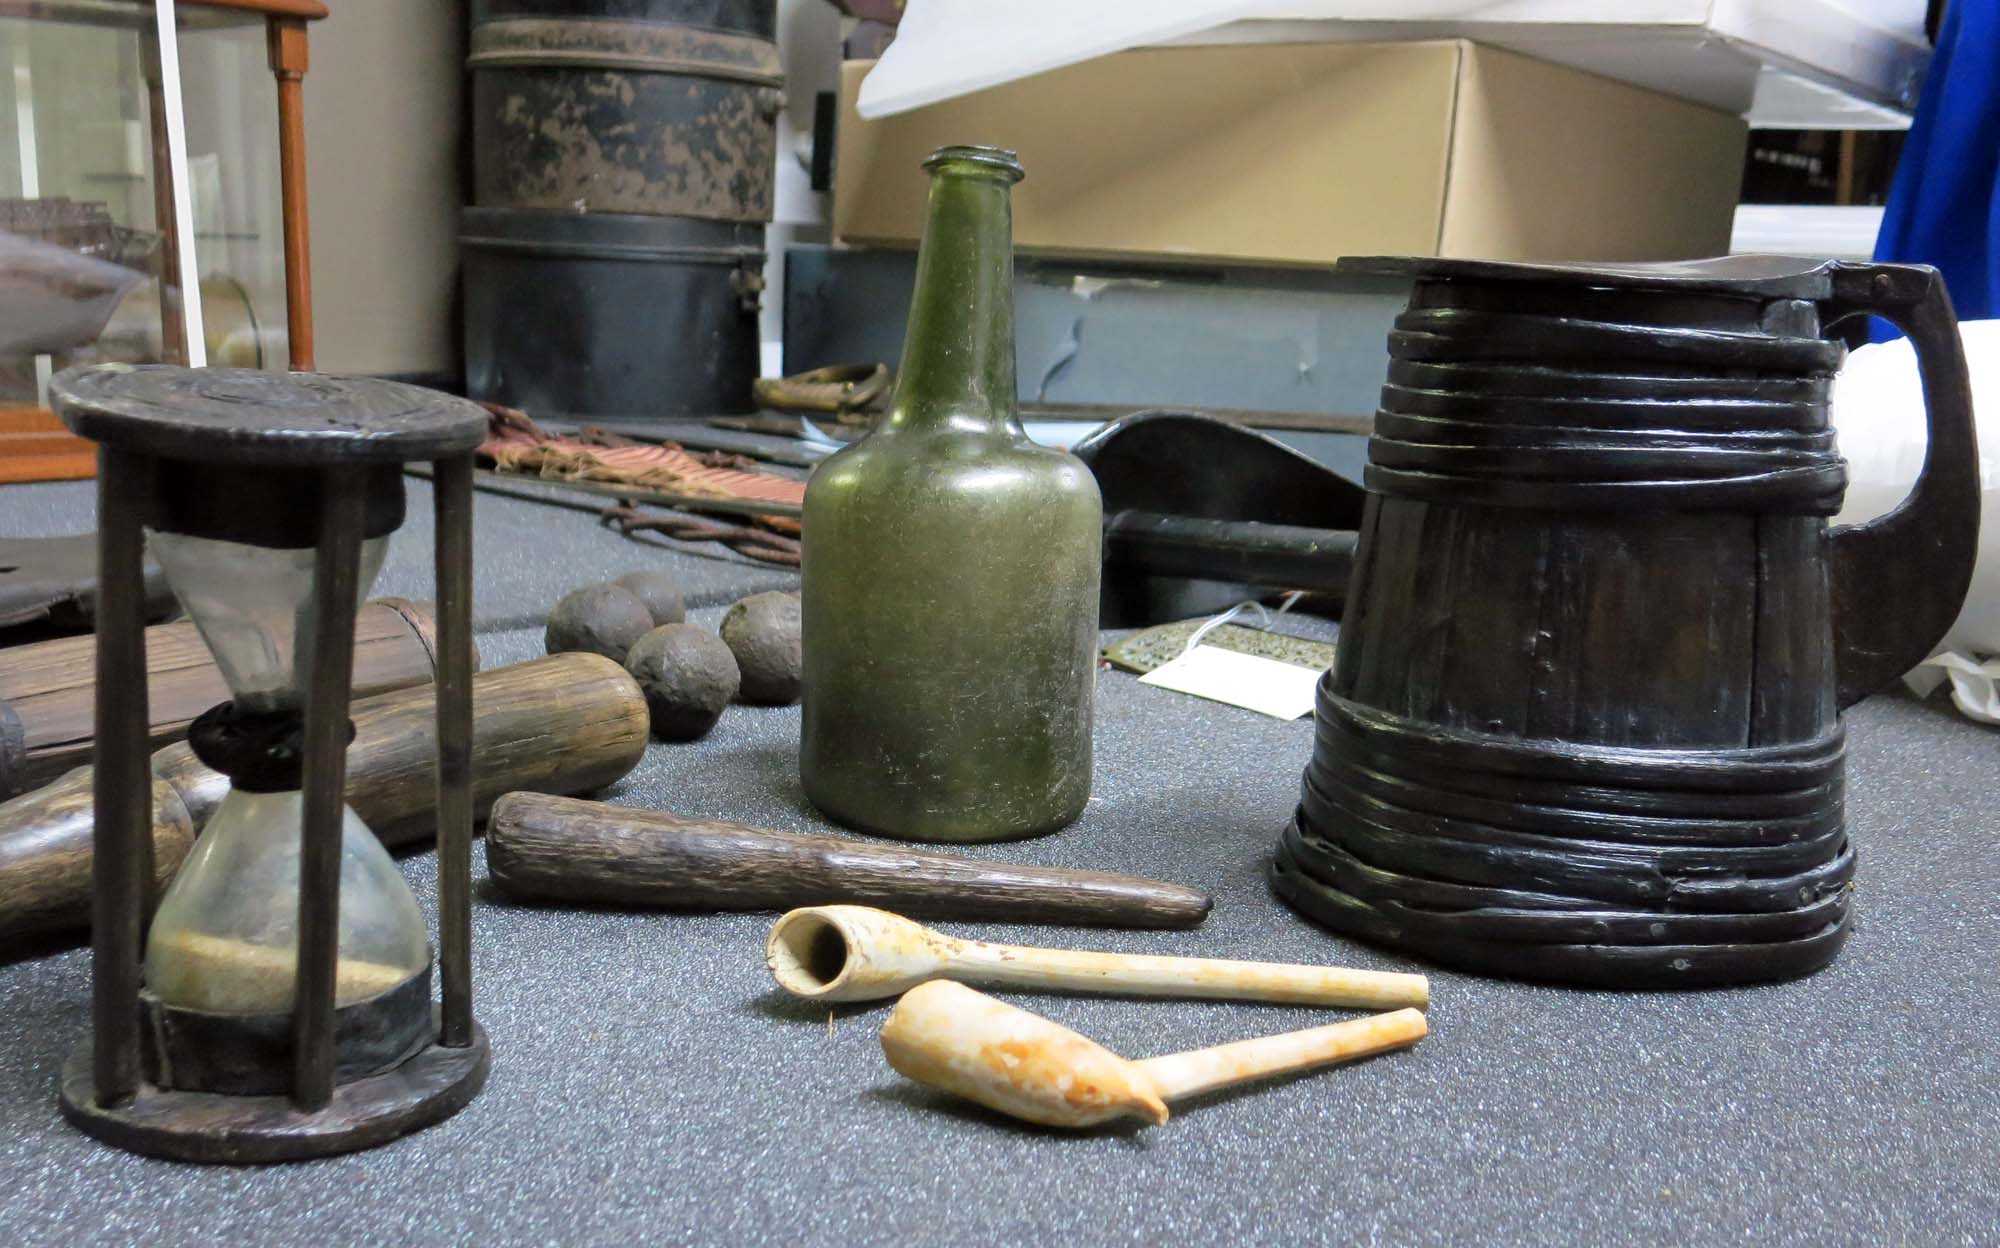 a photo of a tankard, clay pipes, hourglass and other objects on a table